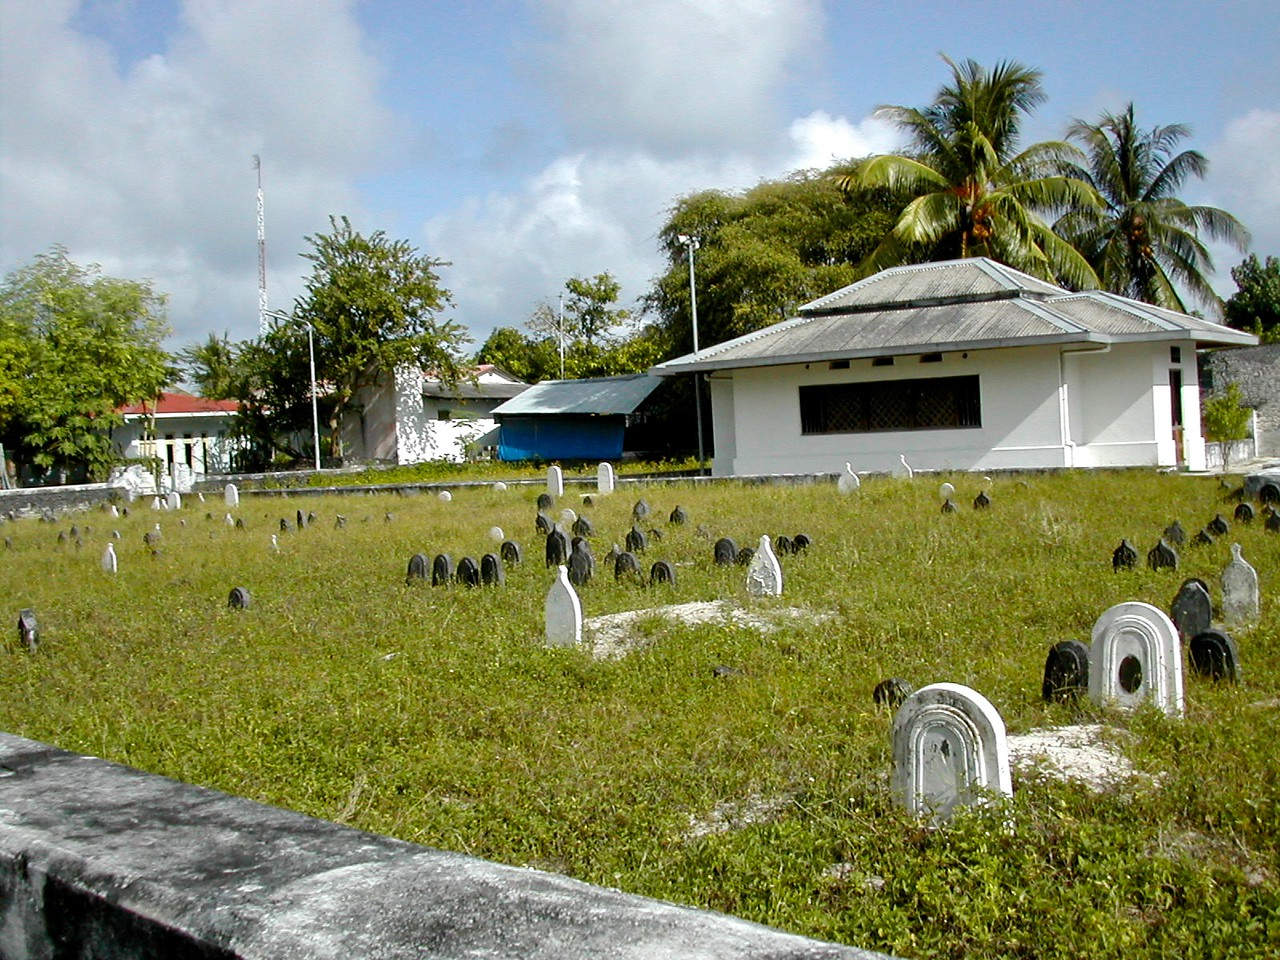 The local Himmafushi cemetery.